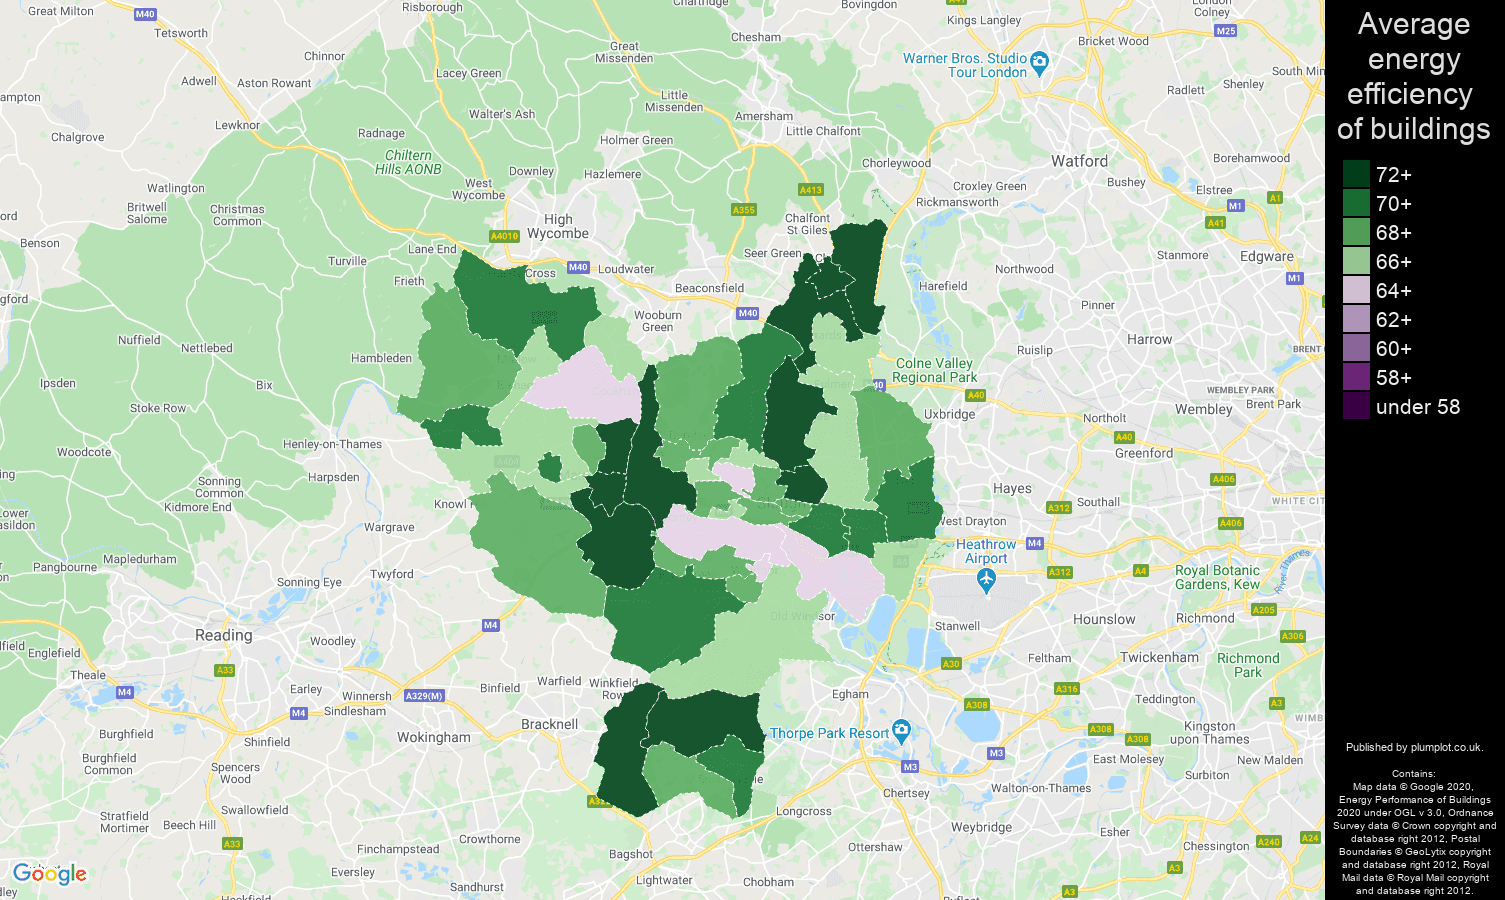 Slough map of energy efficiency of flats